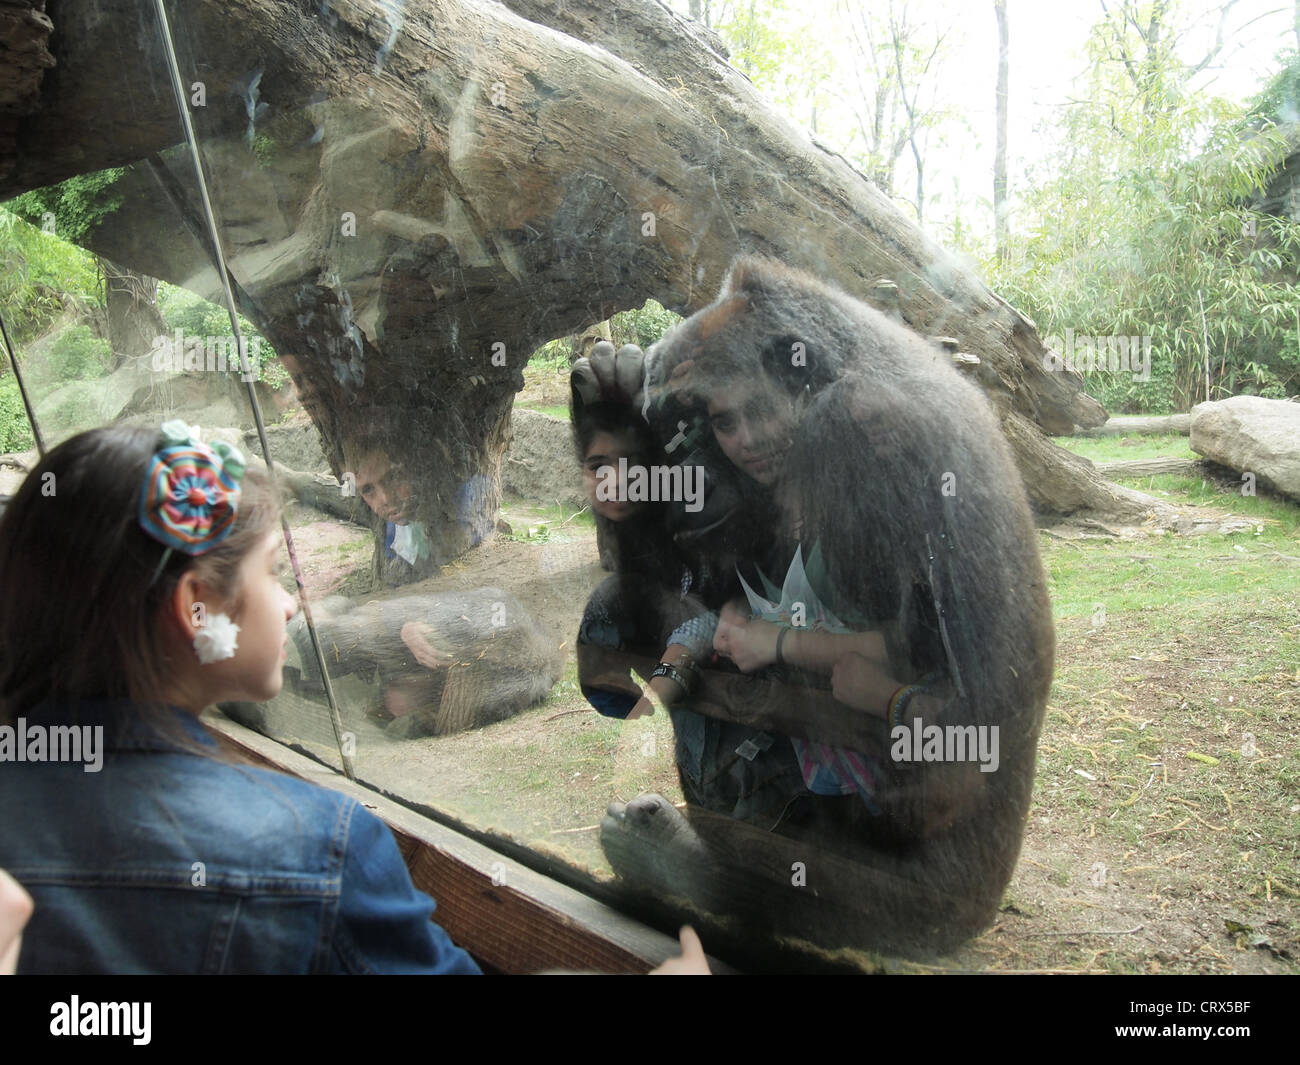 Human Gorilla Contact At The Congo Gorilla Forest Exhibit Bronx Zoo